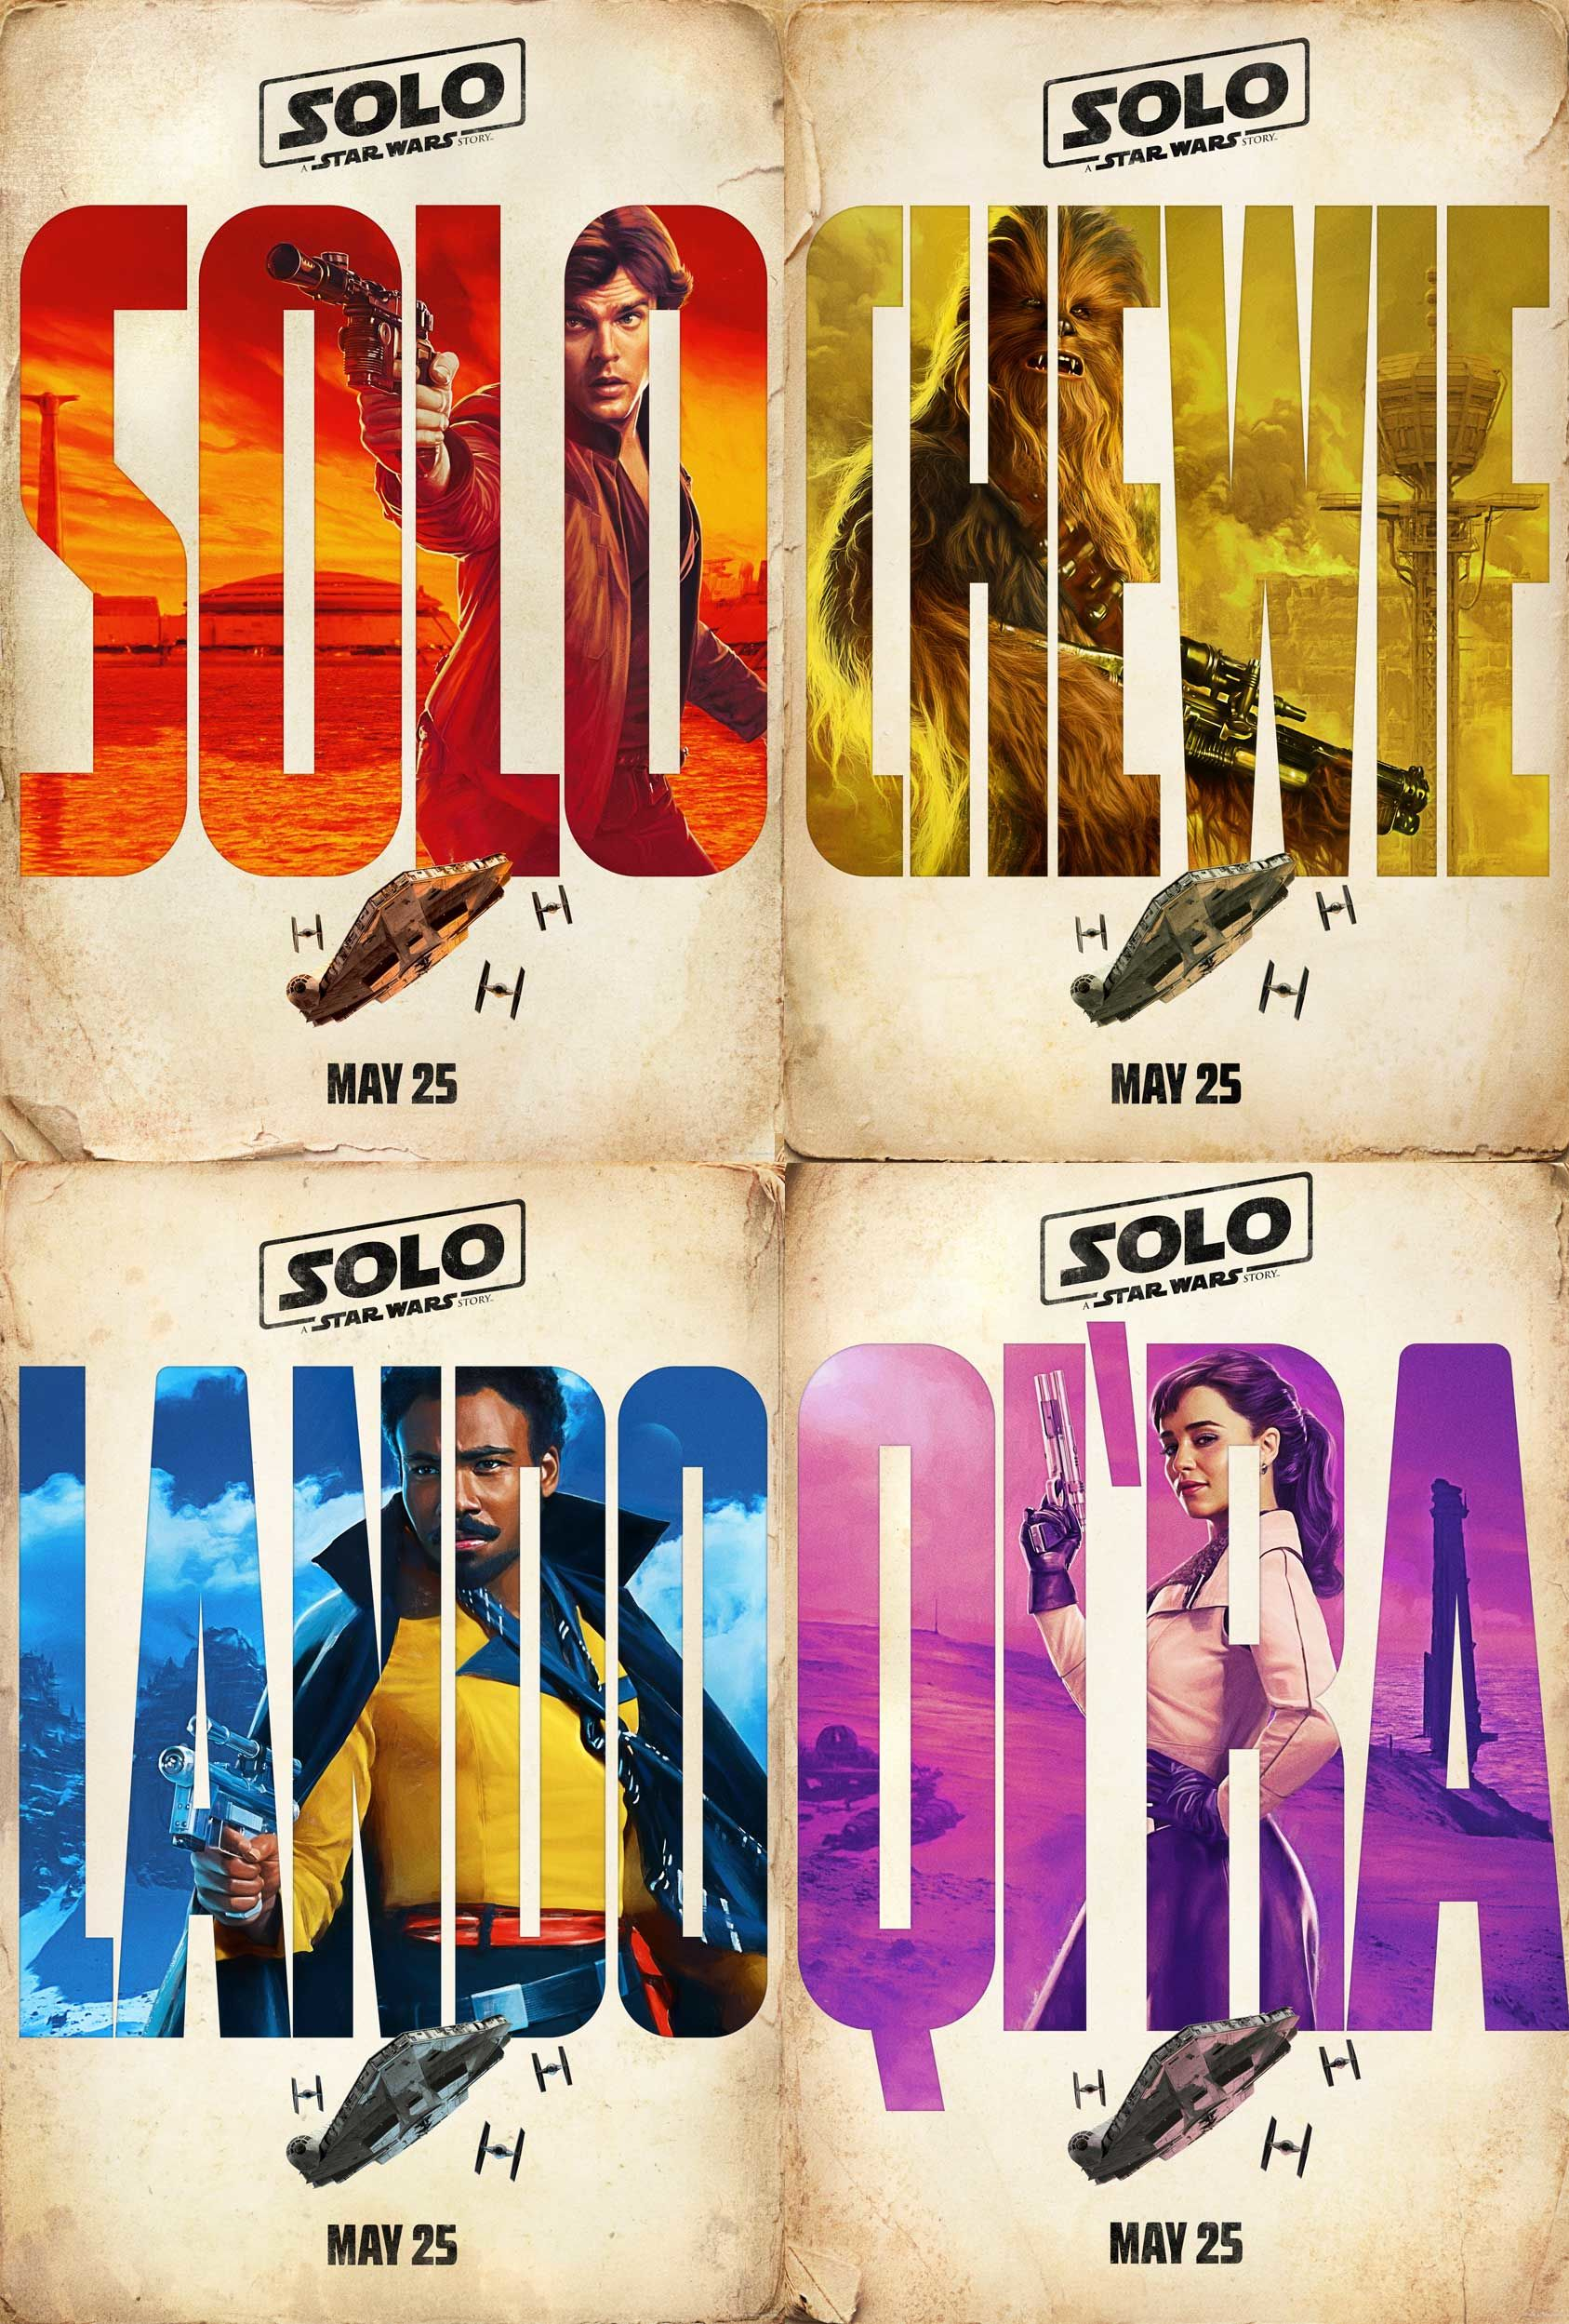 solo-a-star-wars-story-posters-solo-chewie-lando-qira